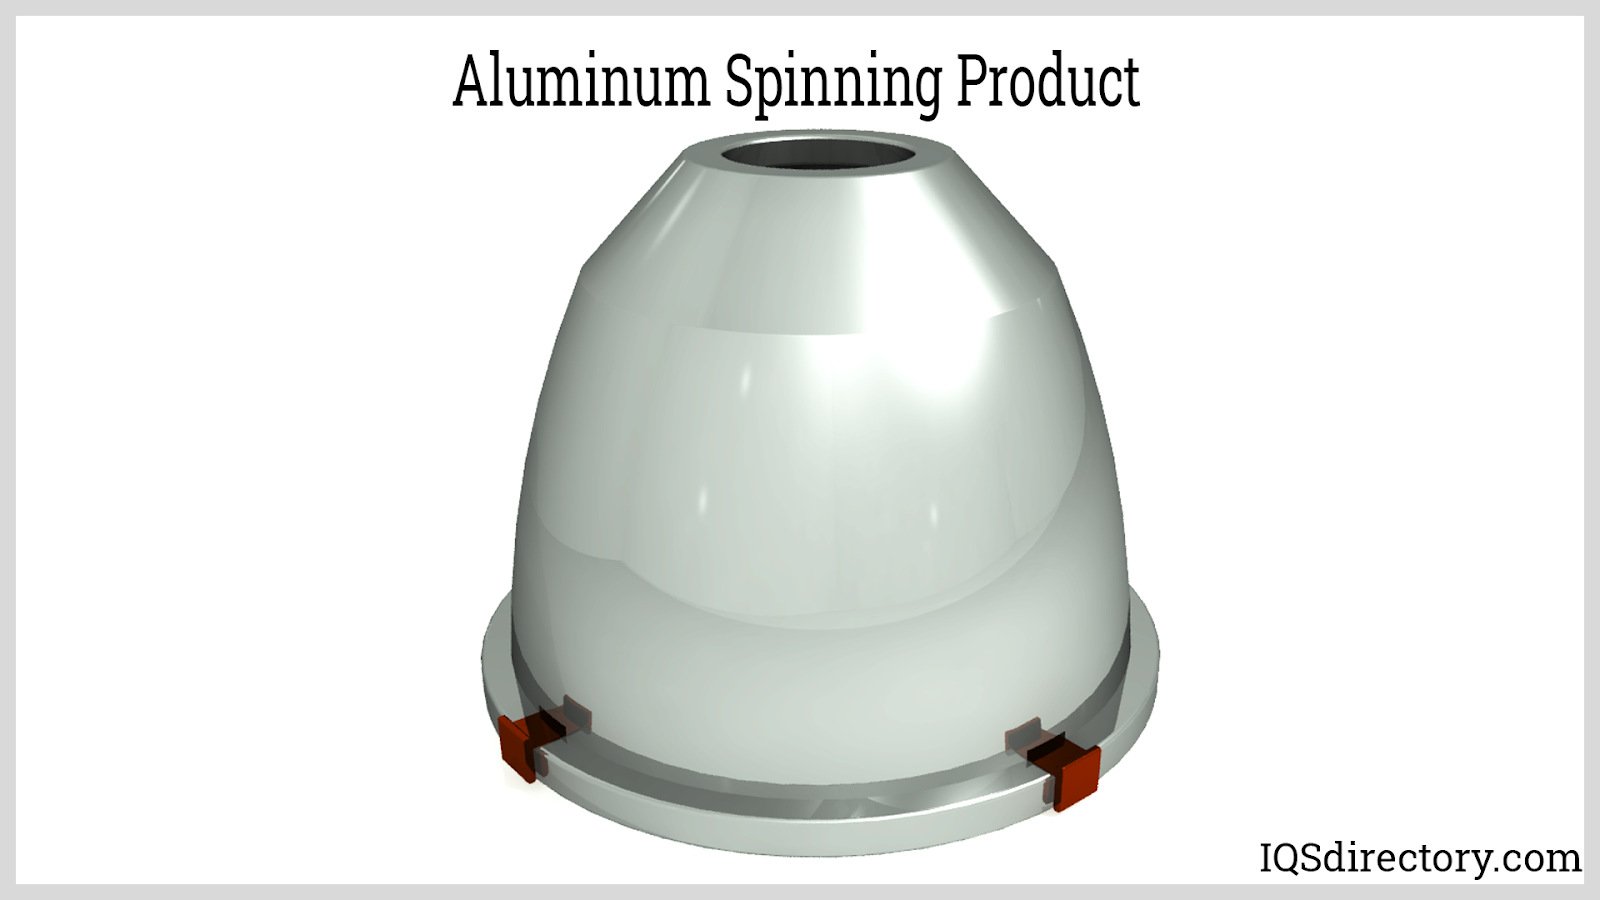 Aluminum Spinning Product